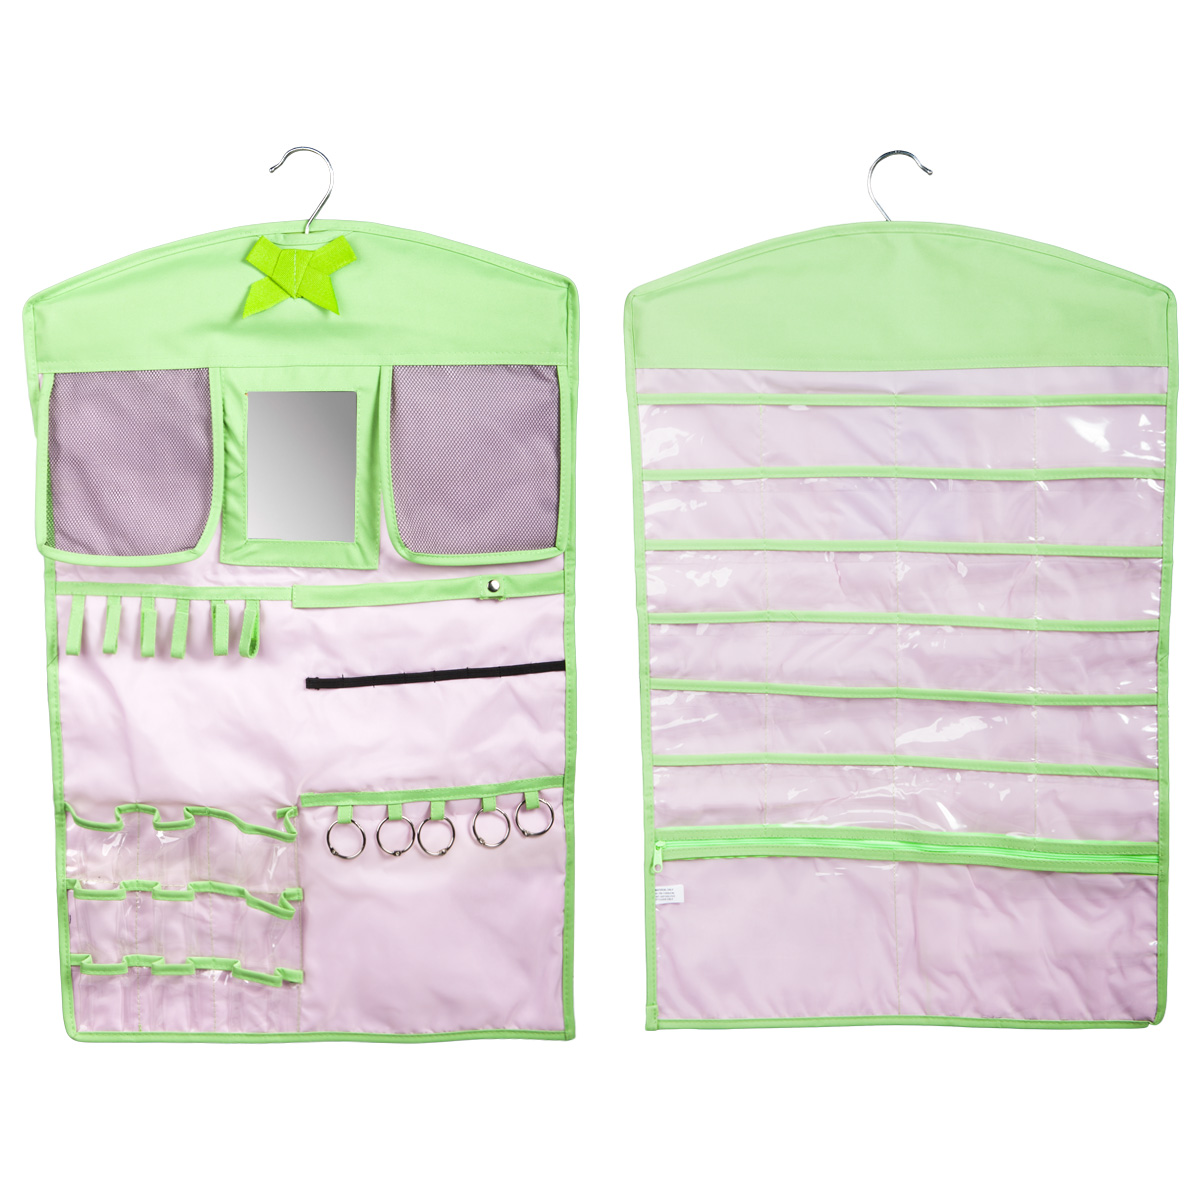 hanging jewelry organizer double sided closet storage pockets earrings necklaces ebay. Black Bedroom Furniture Sets. Home Design Ideas